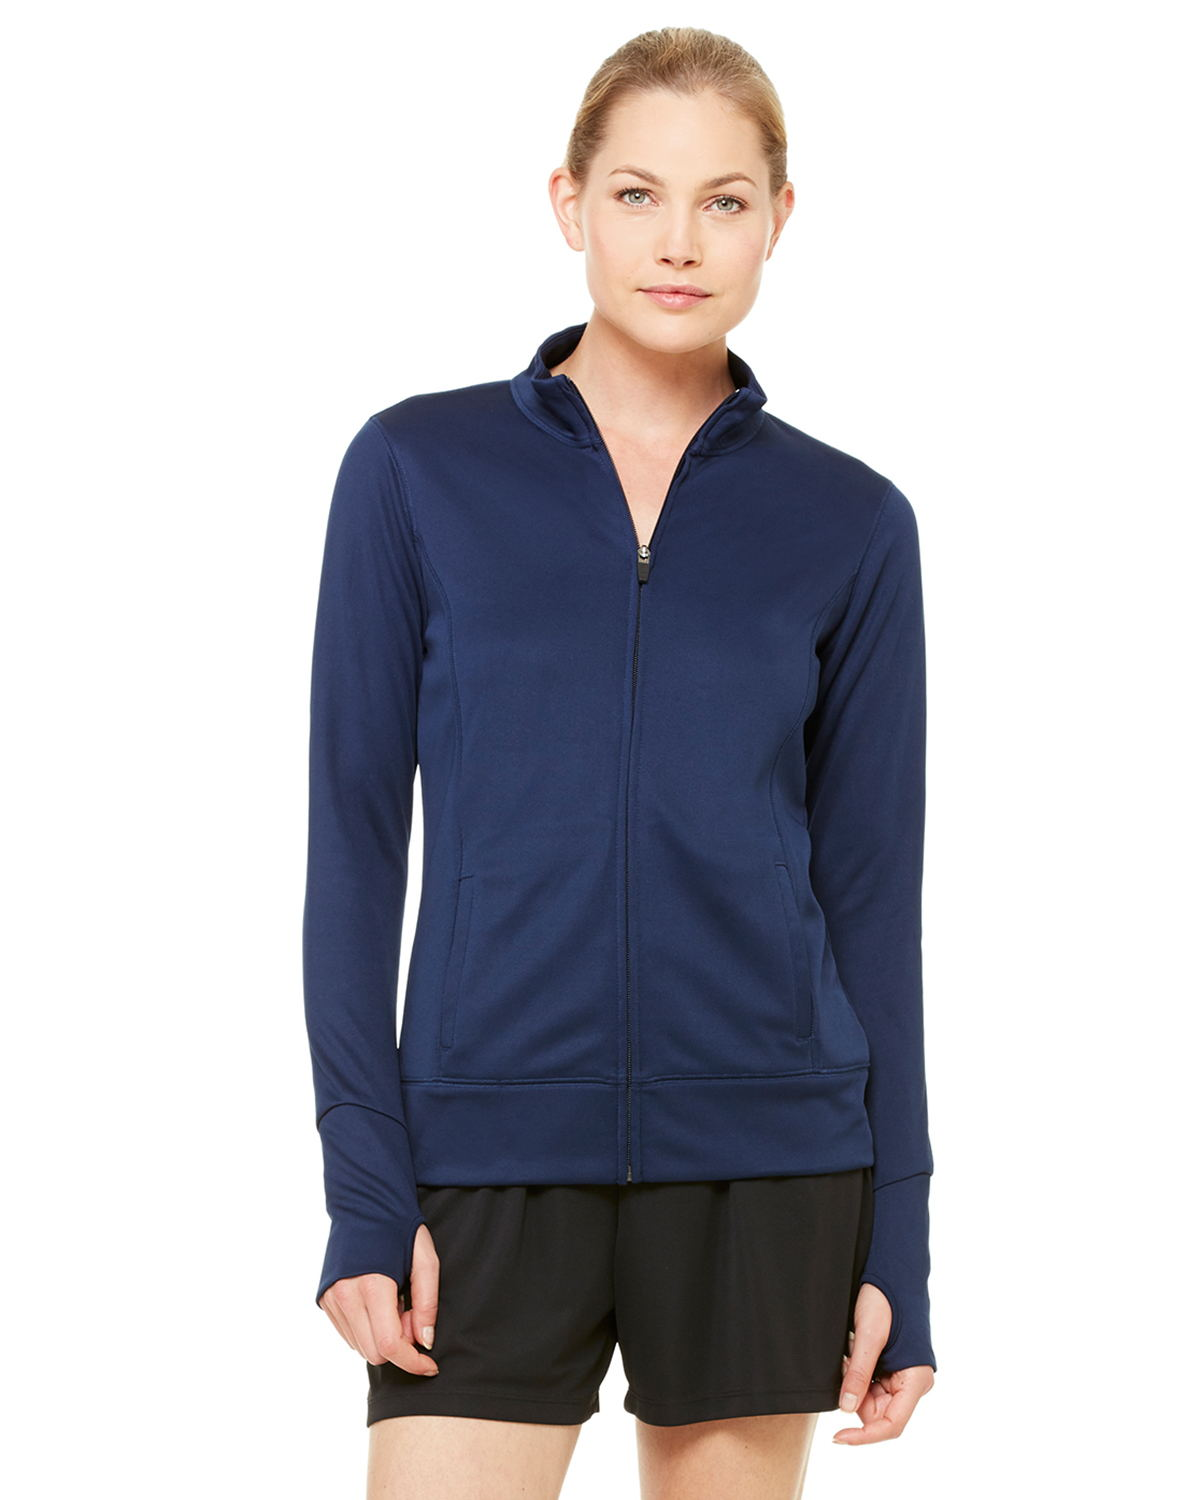 alo - Ladies' Lightweight Jacket